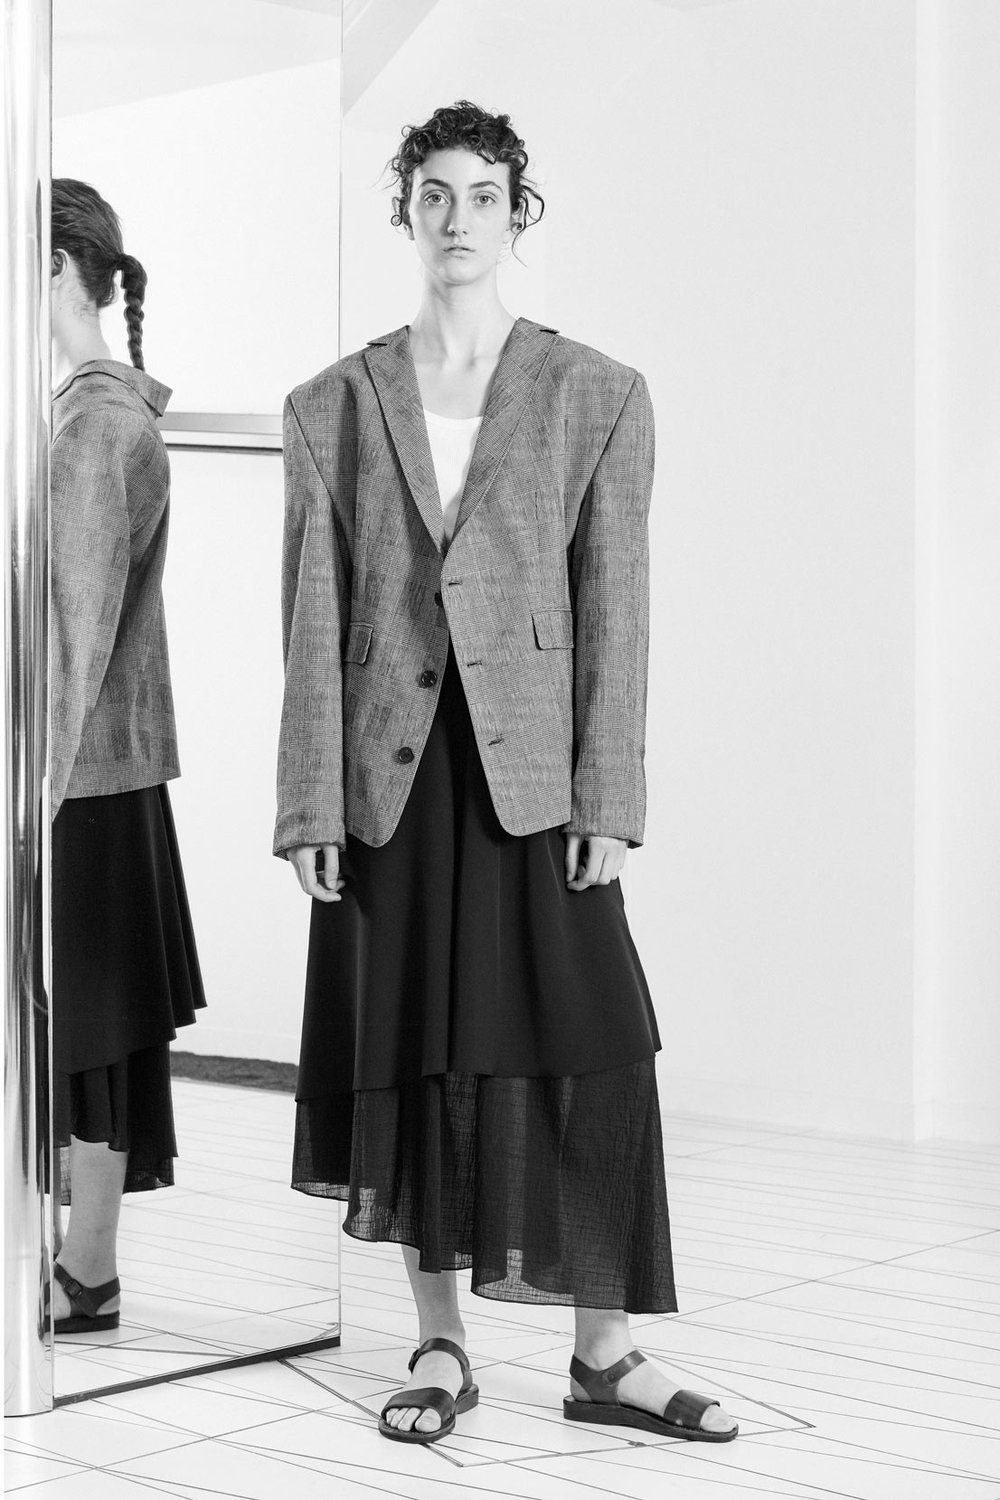 SS19_Chalayan-Resort19-Le-Mile-Magazine_1.jpg